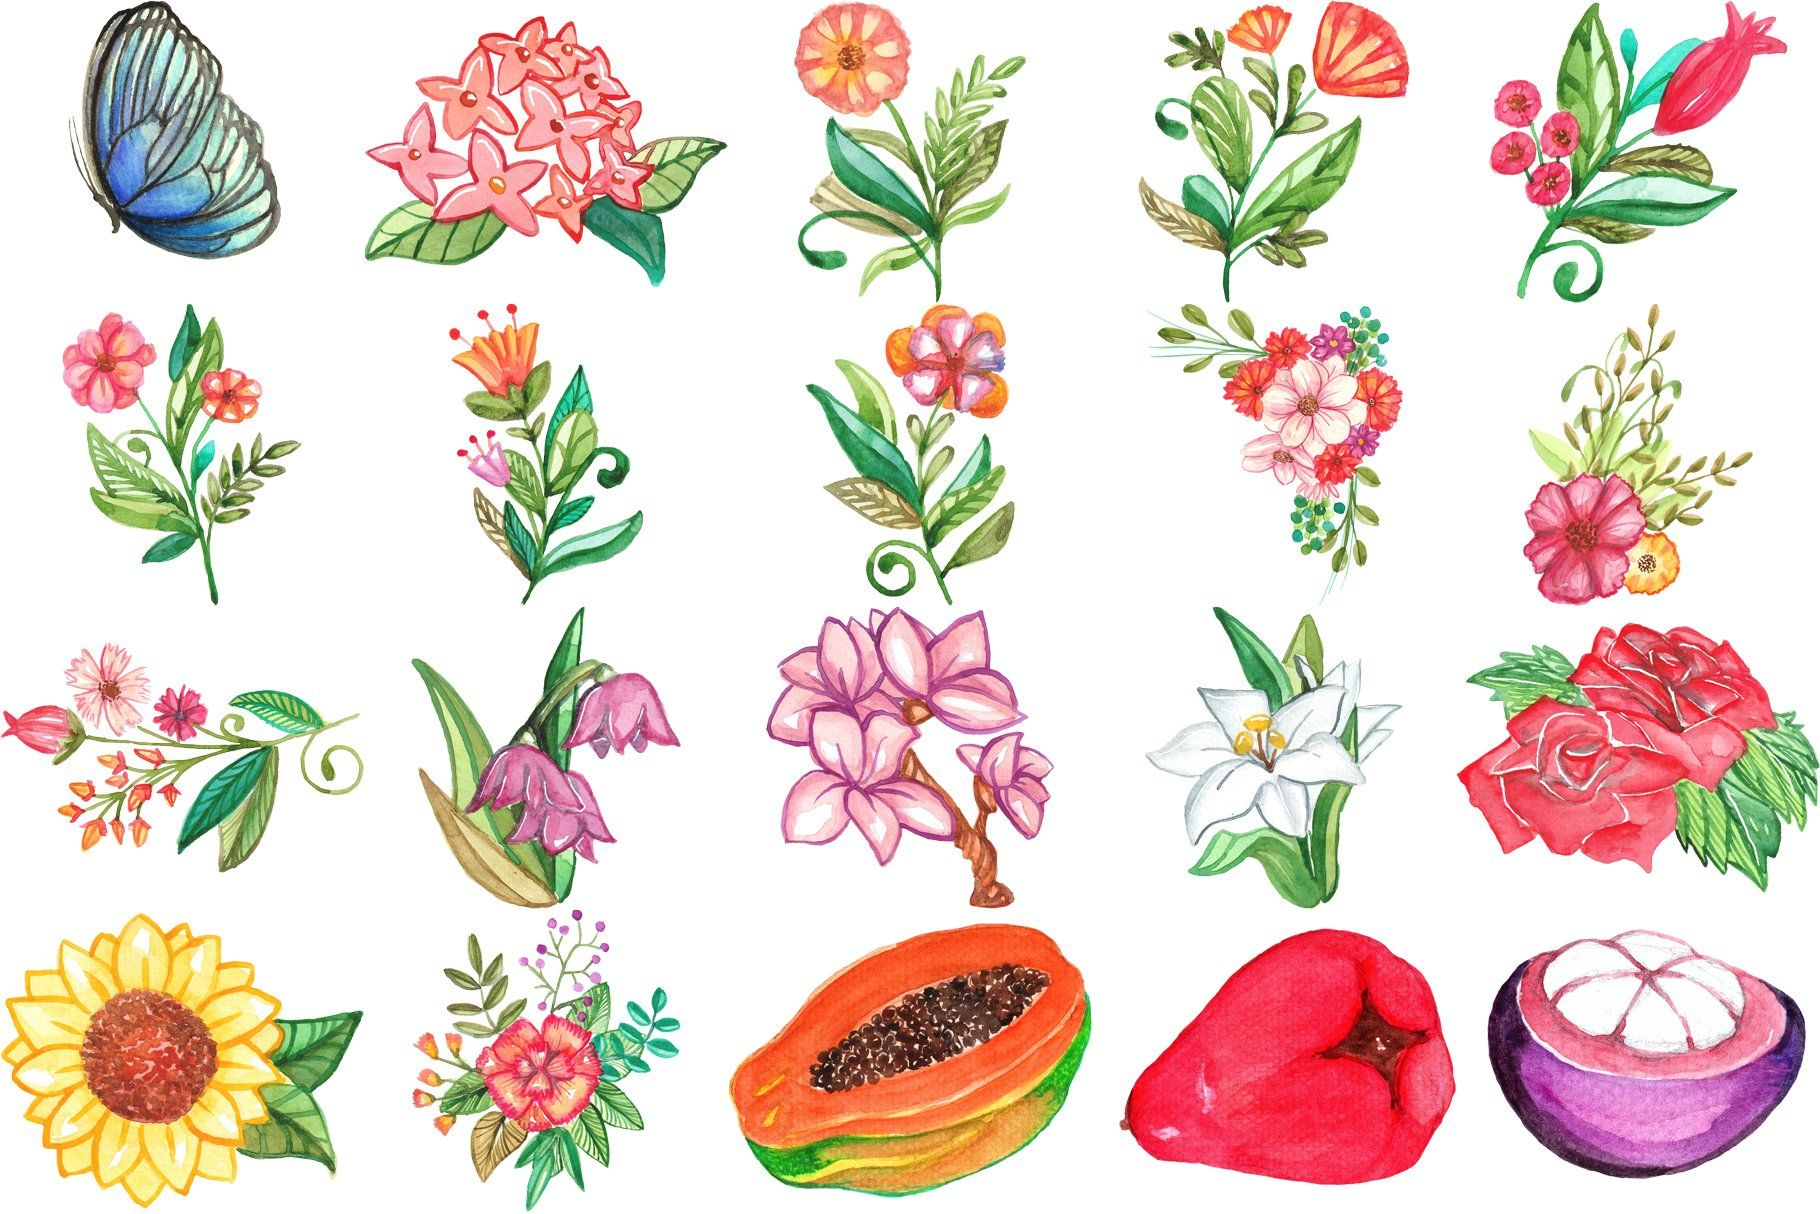 99 Philippine Icons Watercolor Png Watercolor Graphic Illustration